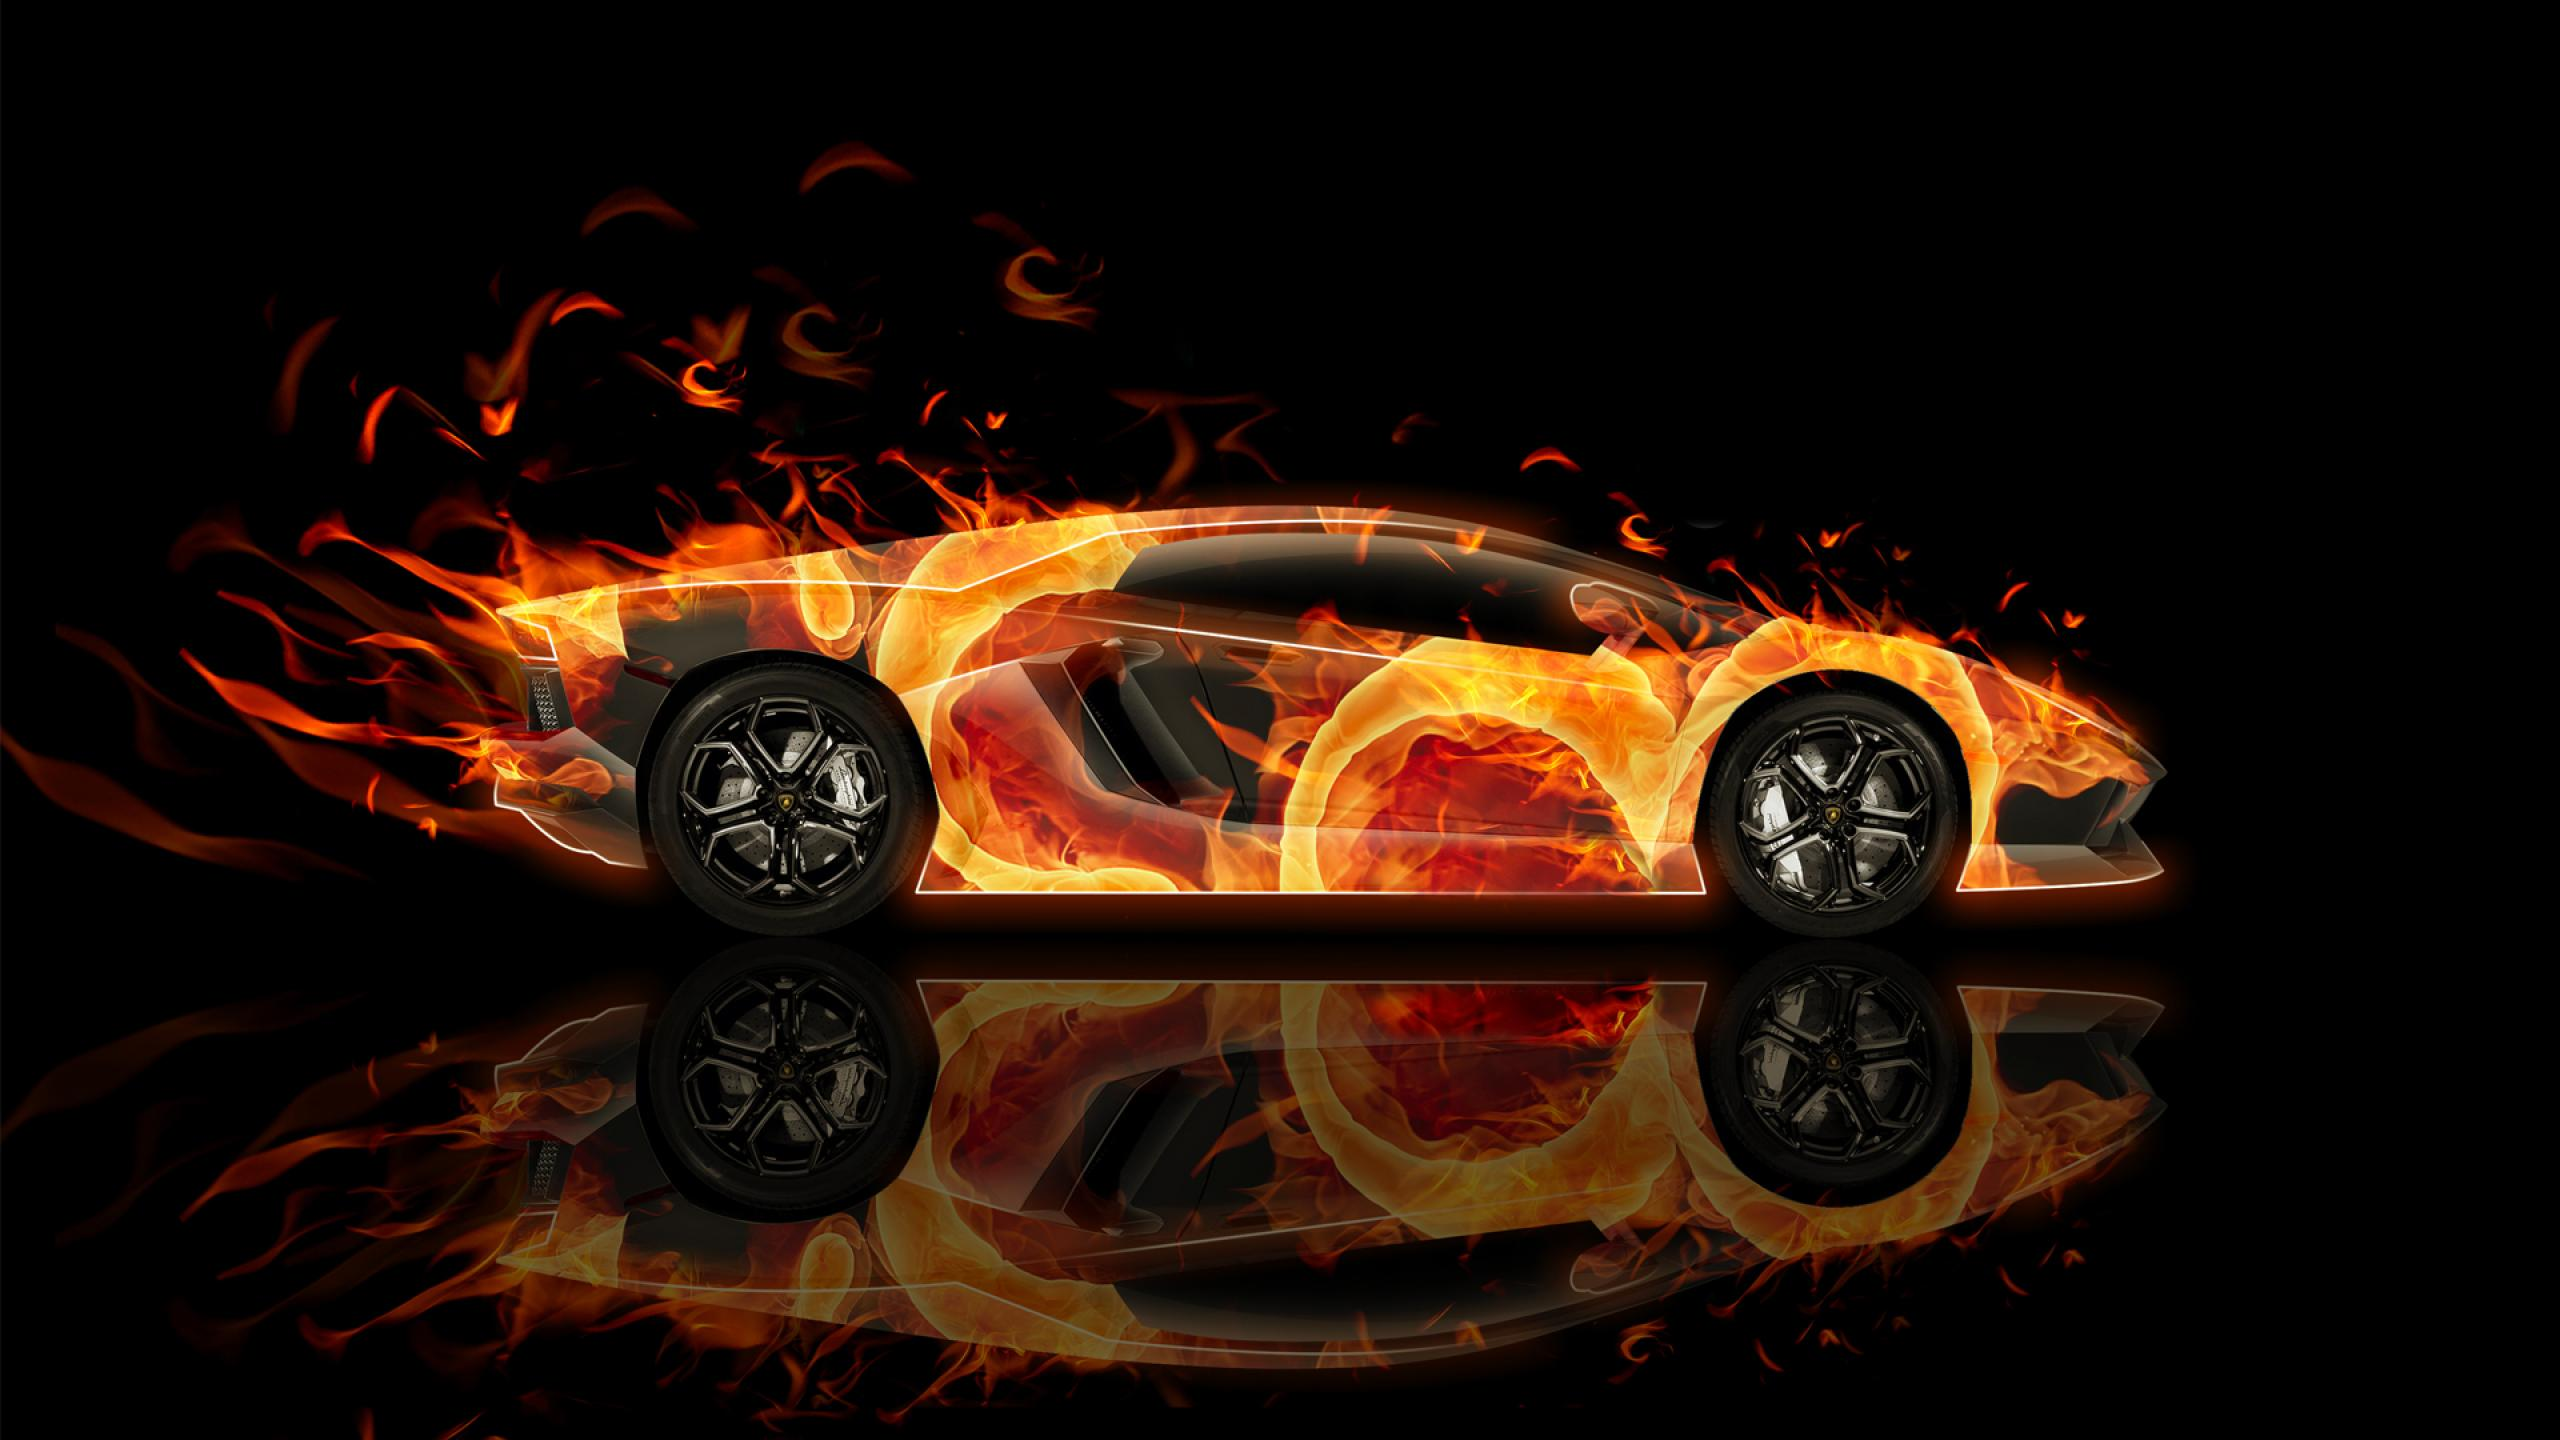 Lamborghini Aventador Fire Hd Wallpaper